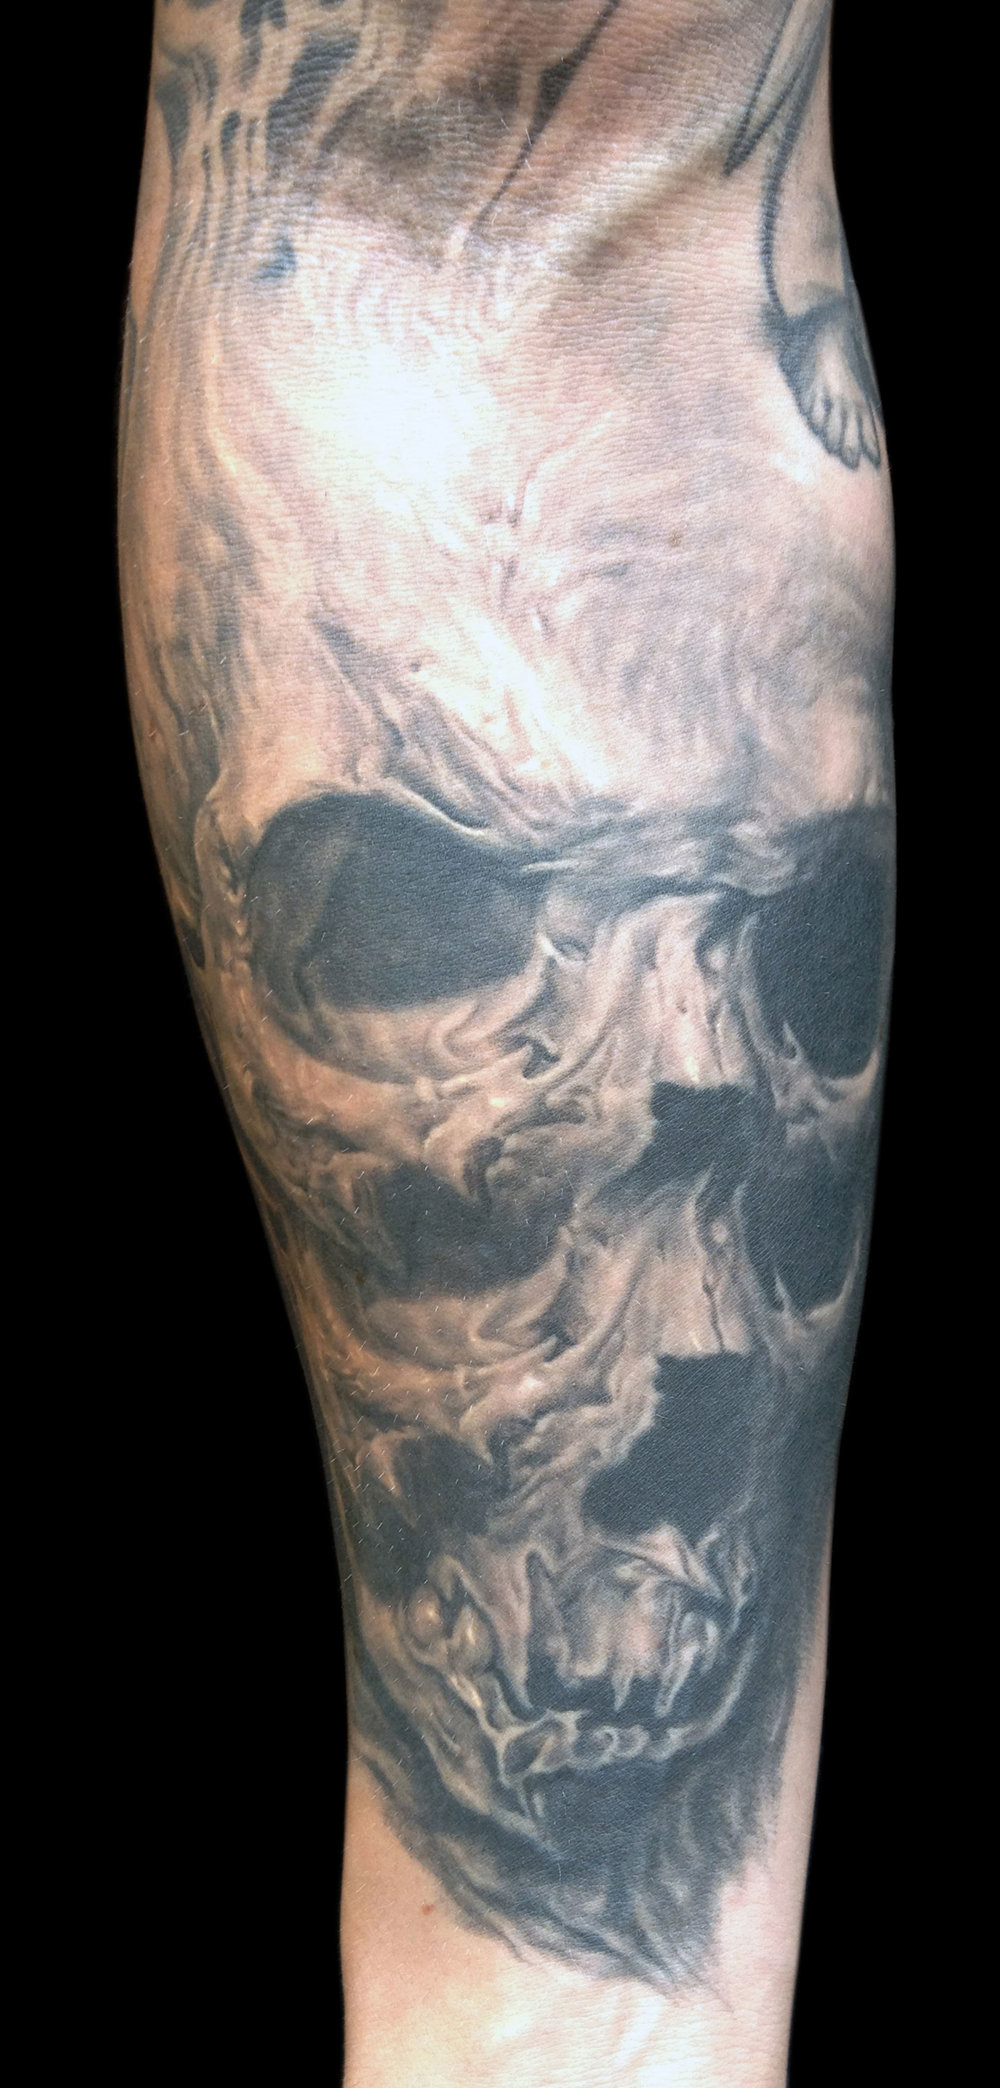 Black and Grey Surreal Horror Skull Tattoo, (healed)